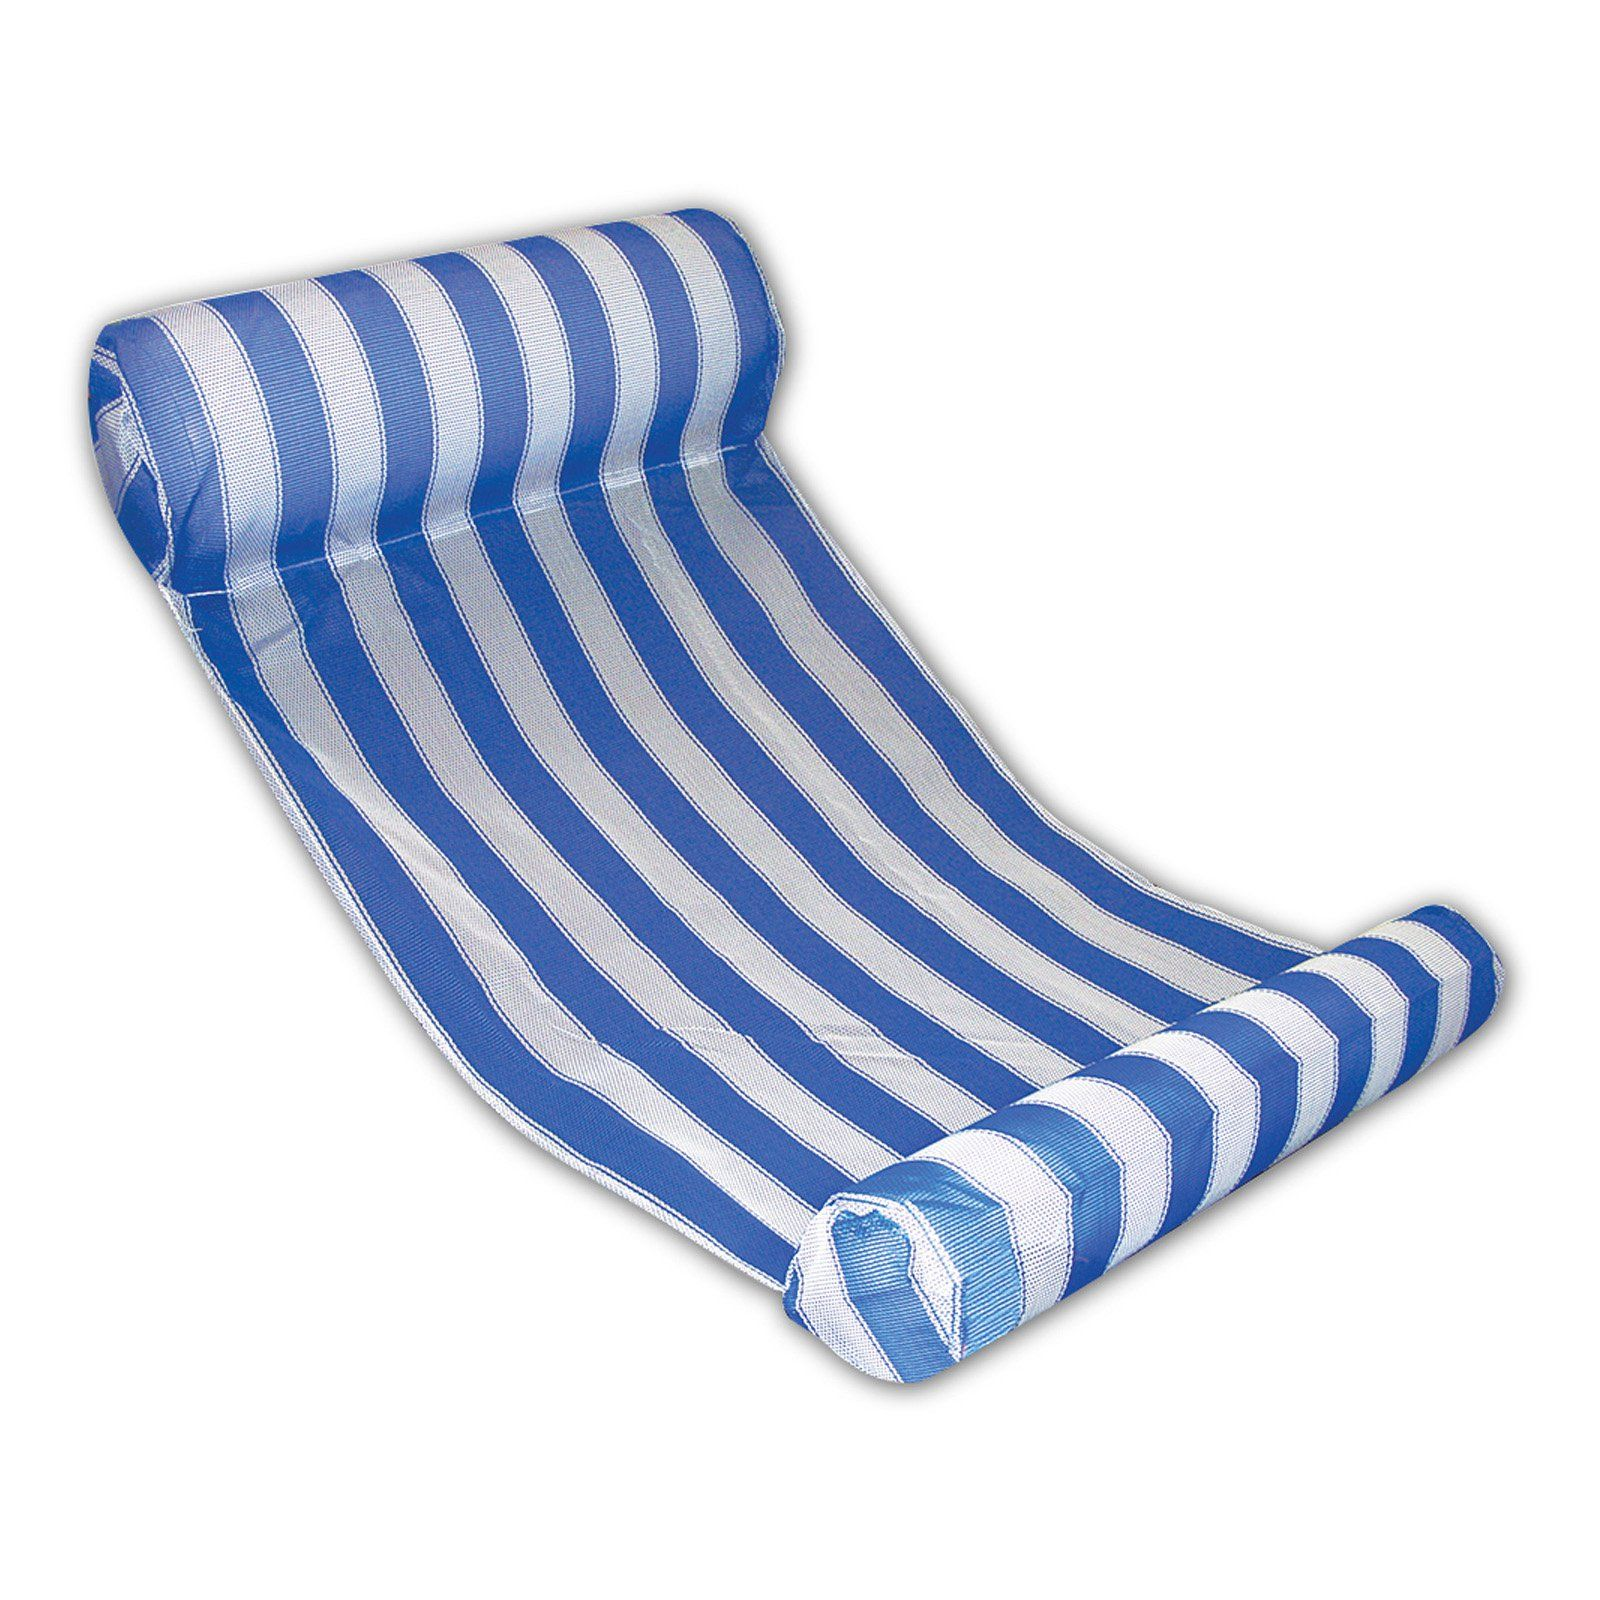 soft b tropic hammock blue the home pools pool outdoors supplies water n depot mattress lounger poolmaster floats